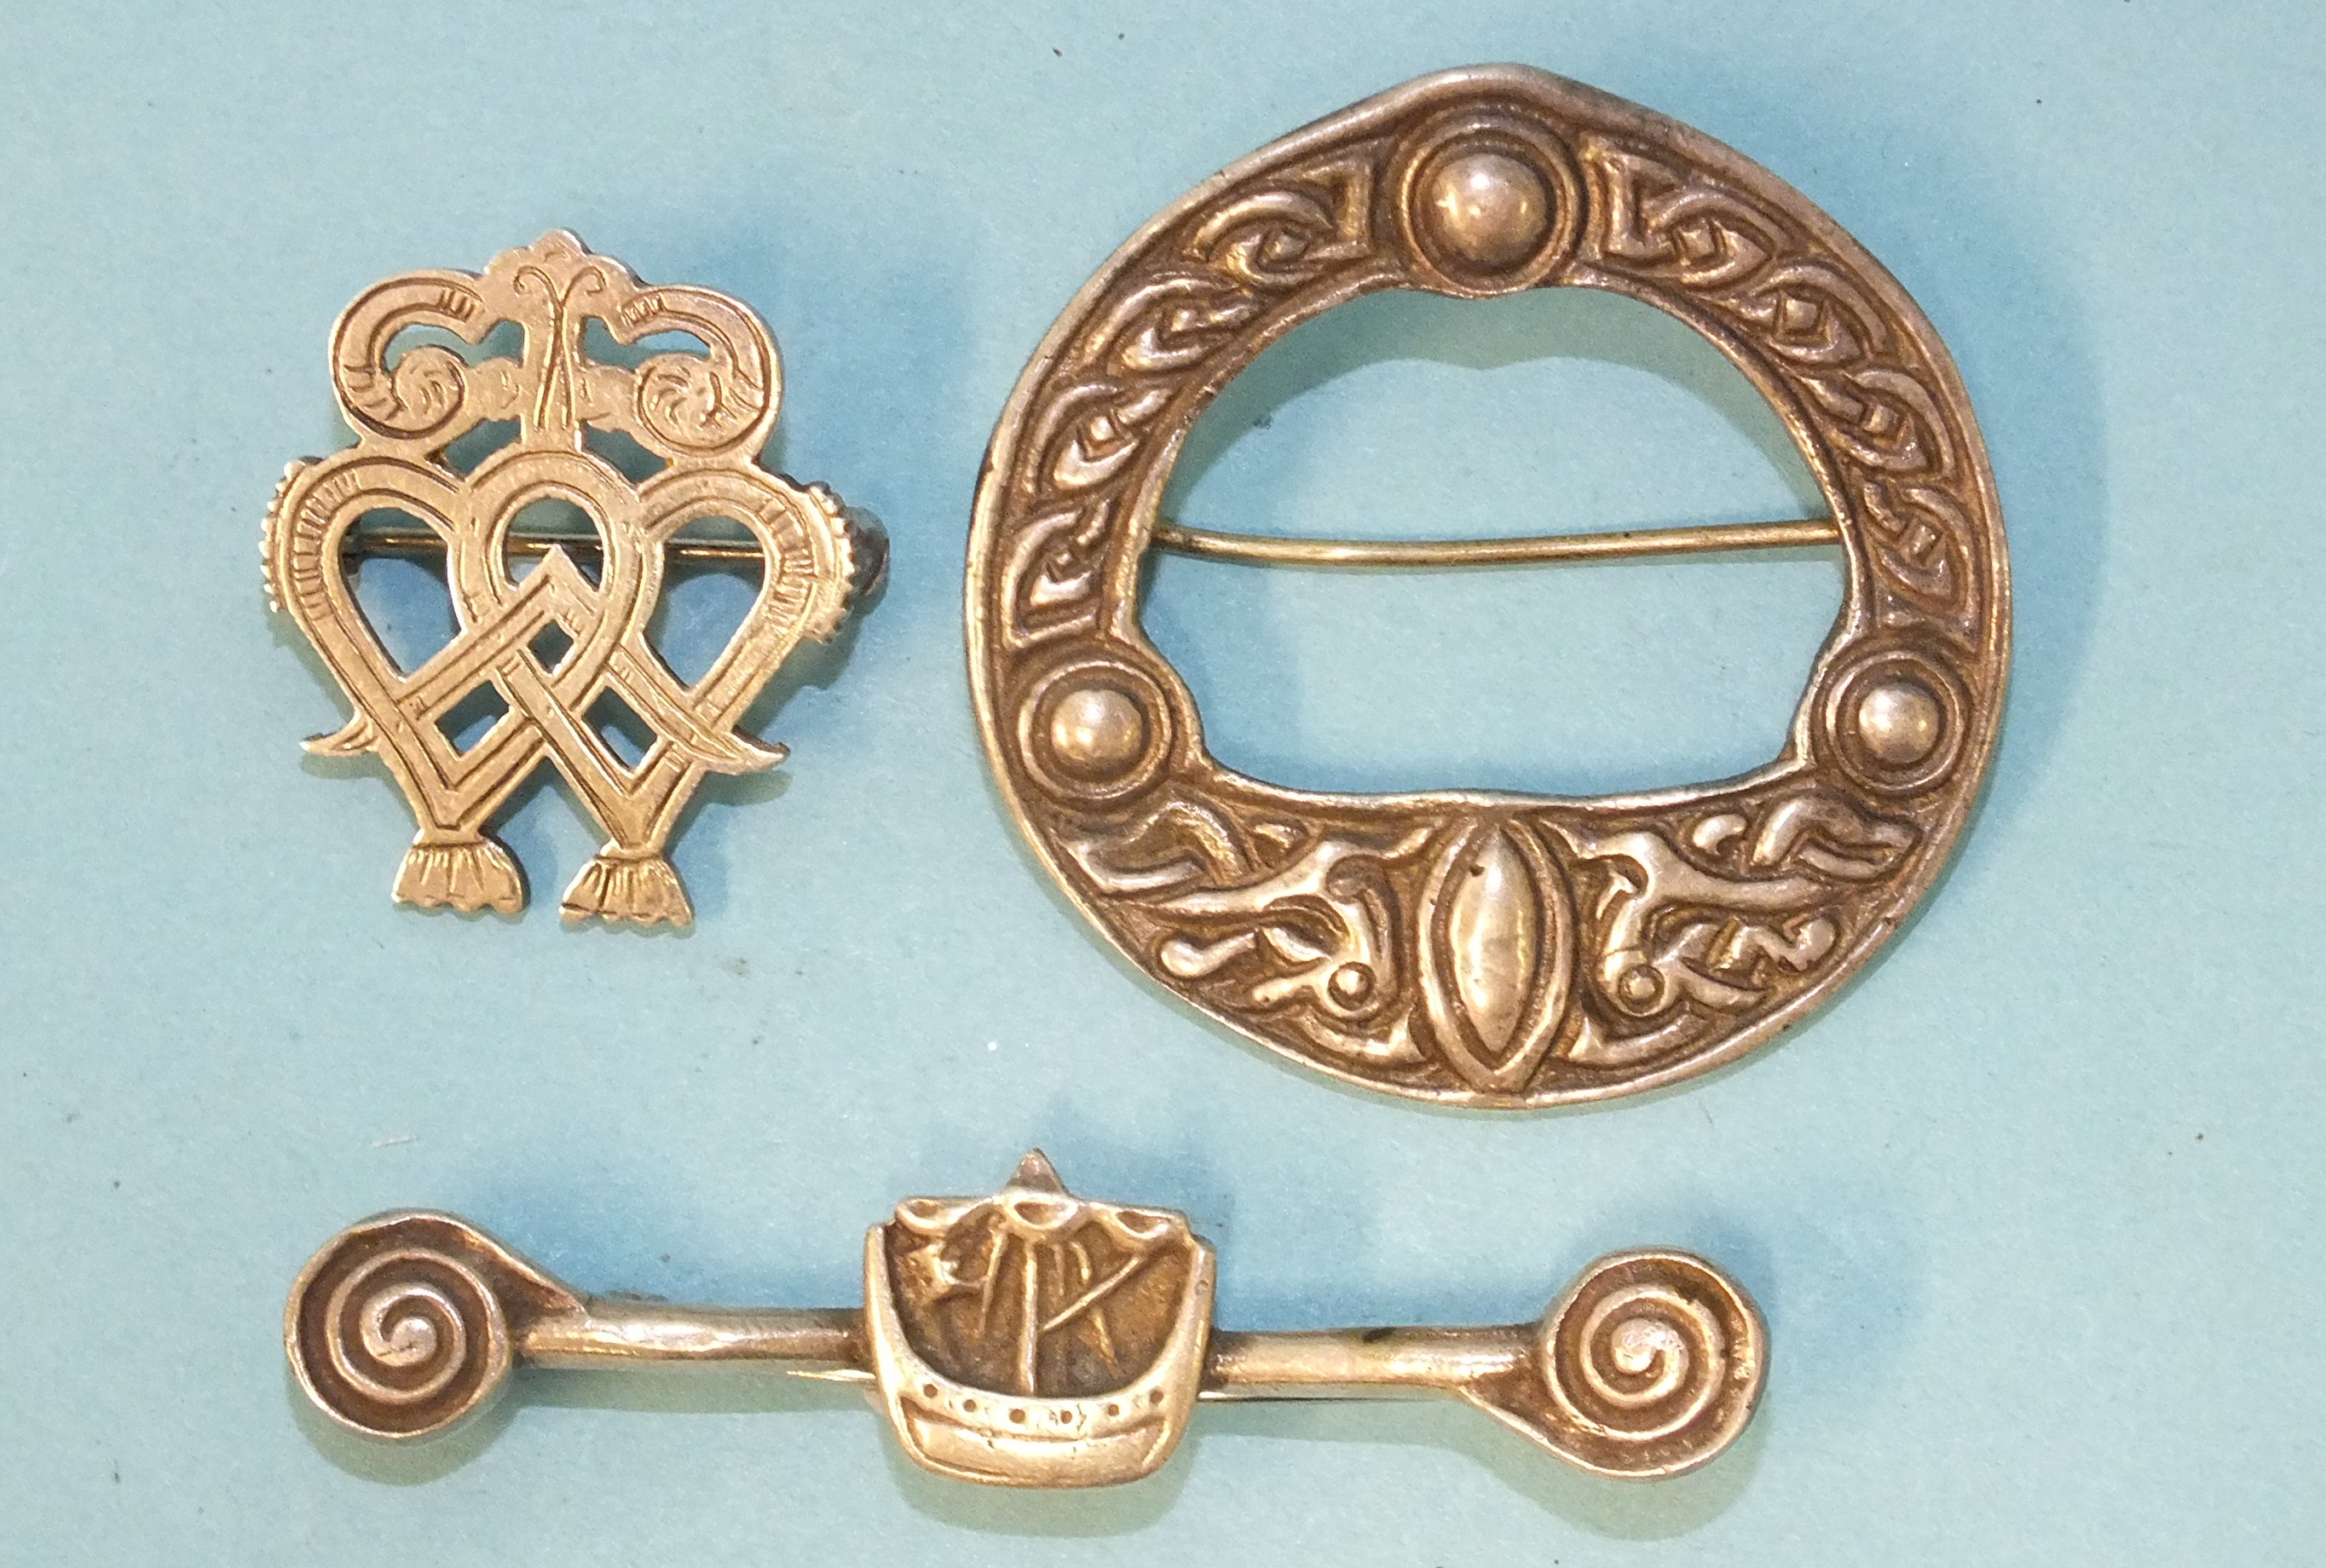 An Ola Gorie of Orkney silver luckenbooth brooch/pendant, 25mm high, a Robert Allison of Iona Celtic